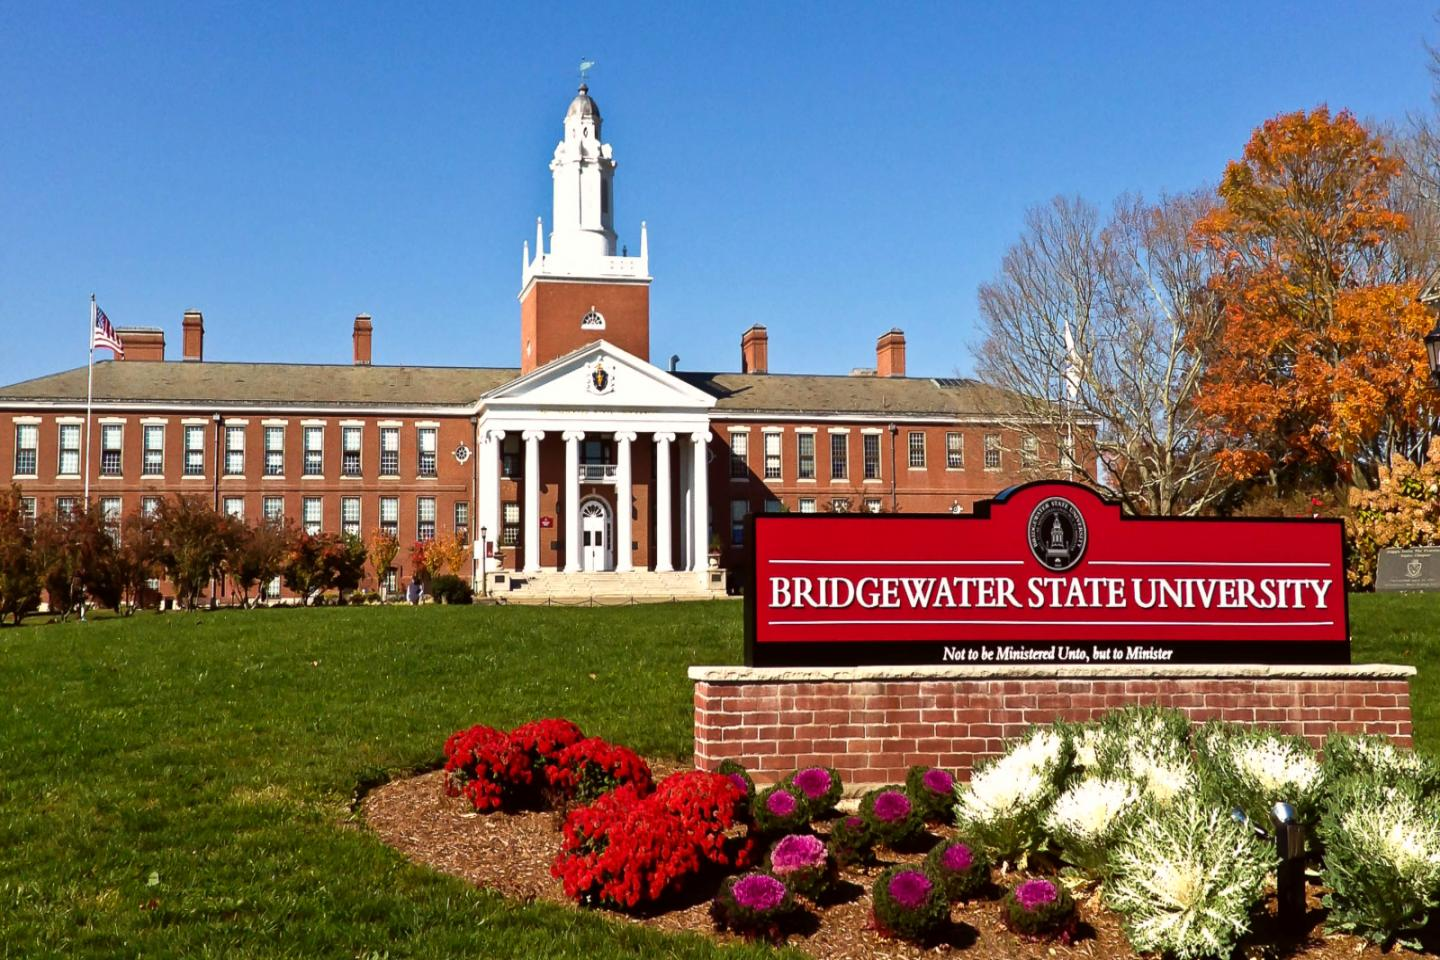 10 Hardest Courses of Bridgewater State University